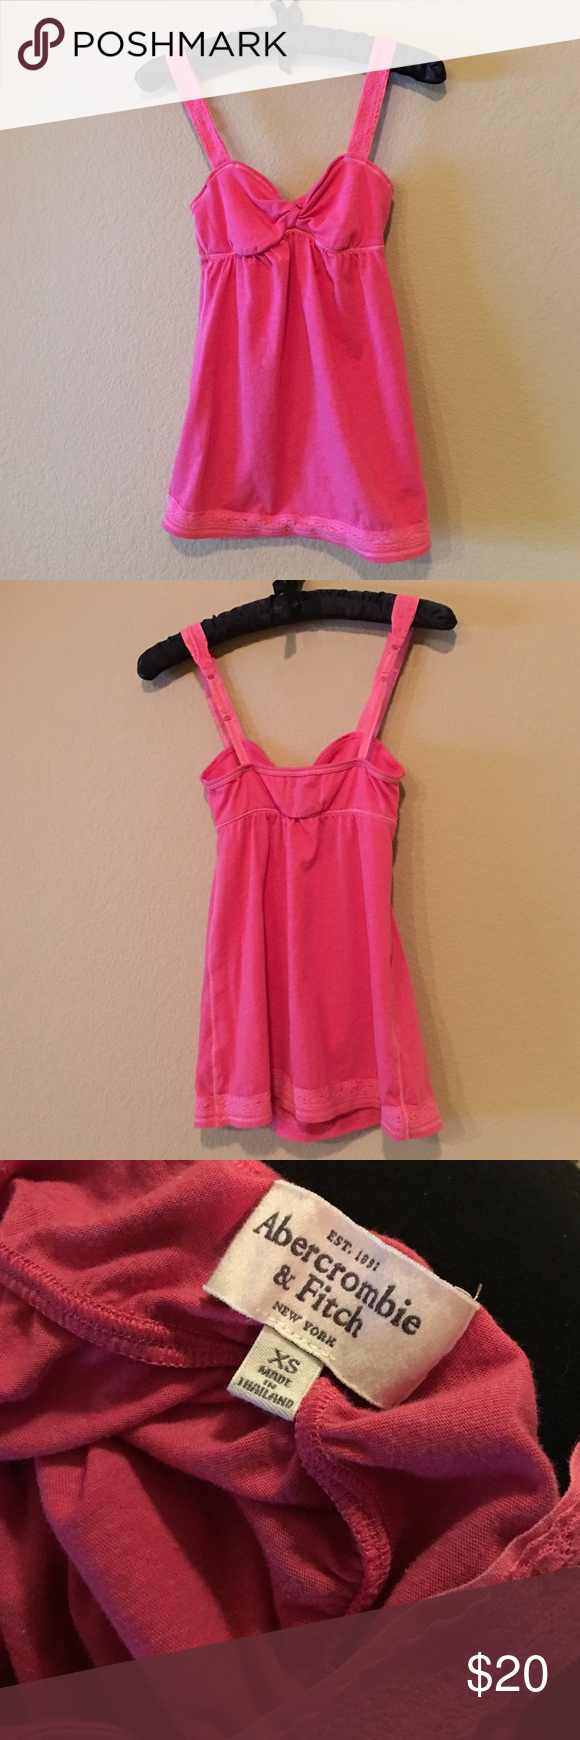 Abercrombie & Fitch pink tank top Cute Abercrombie & Fitch pink tank top with lace trimmed front straps and hem, twist front. Adjustable straps. Price is firm. Abercrombie & Fitch Tops Tank Tops